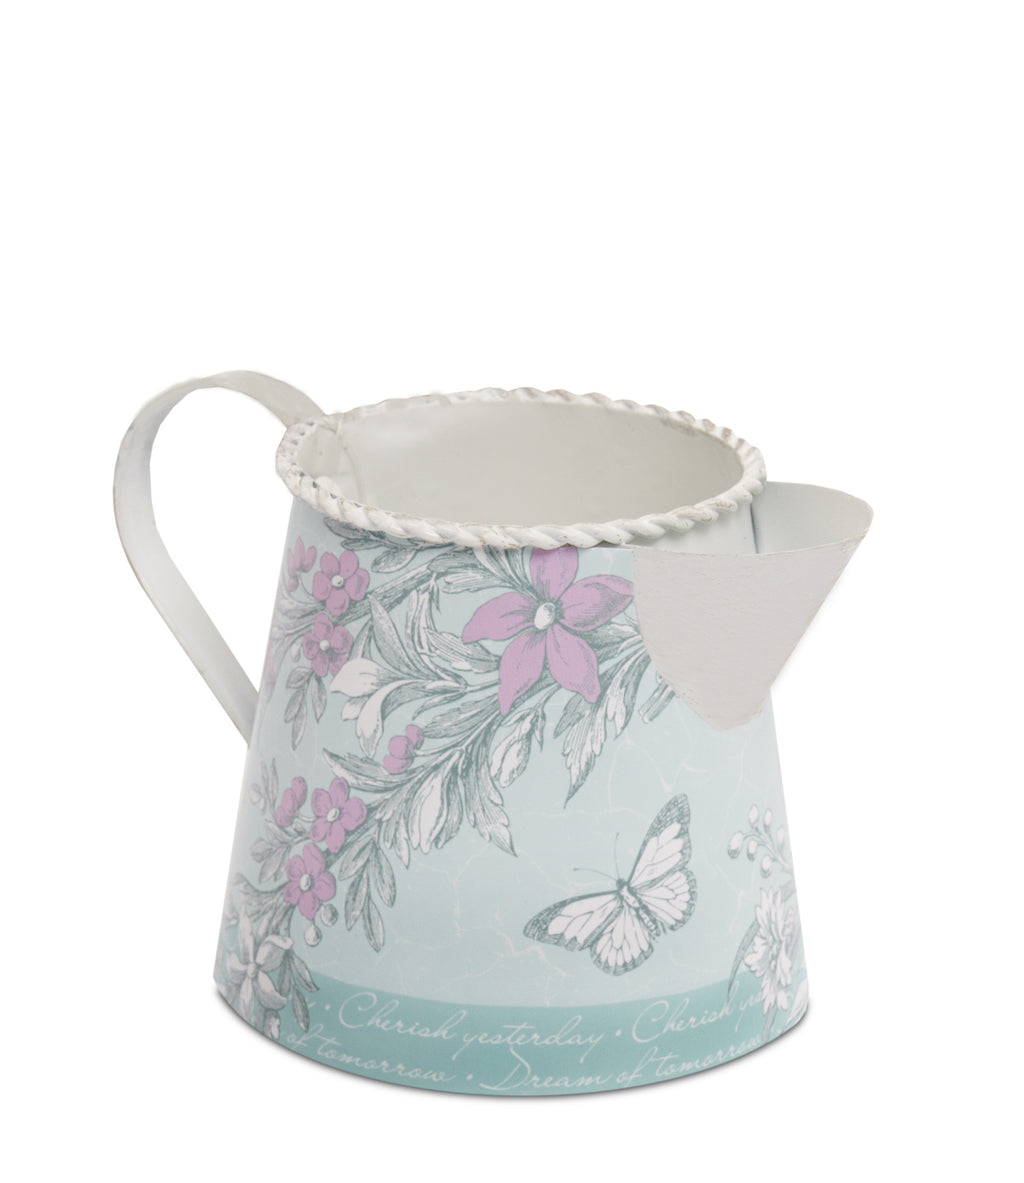 Small Jug - From Heart and Home